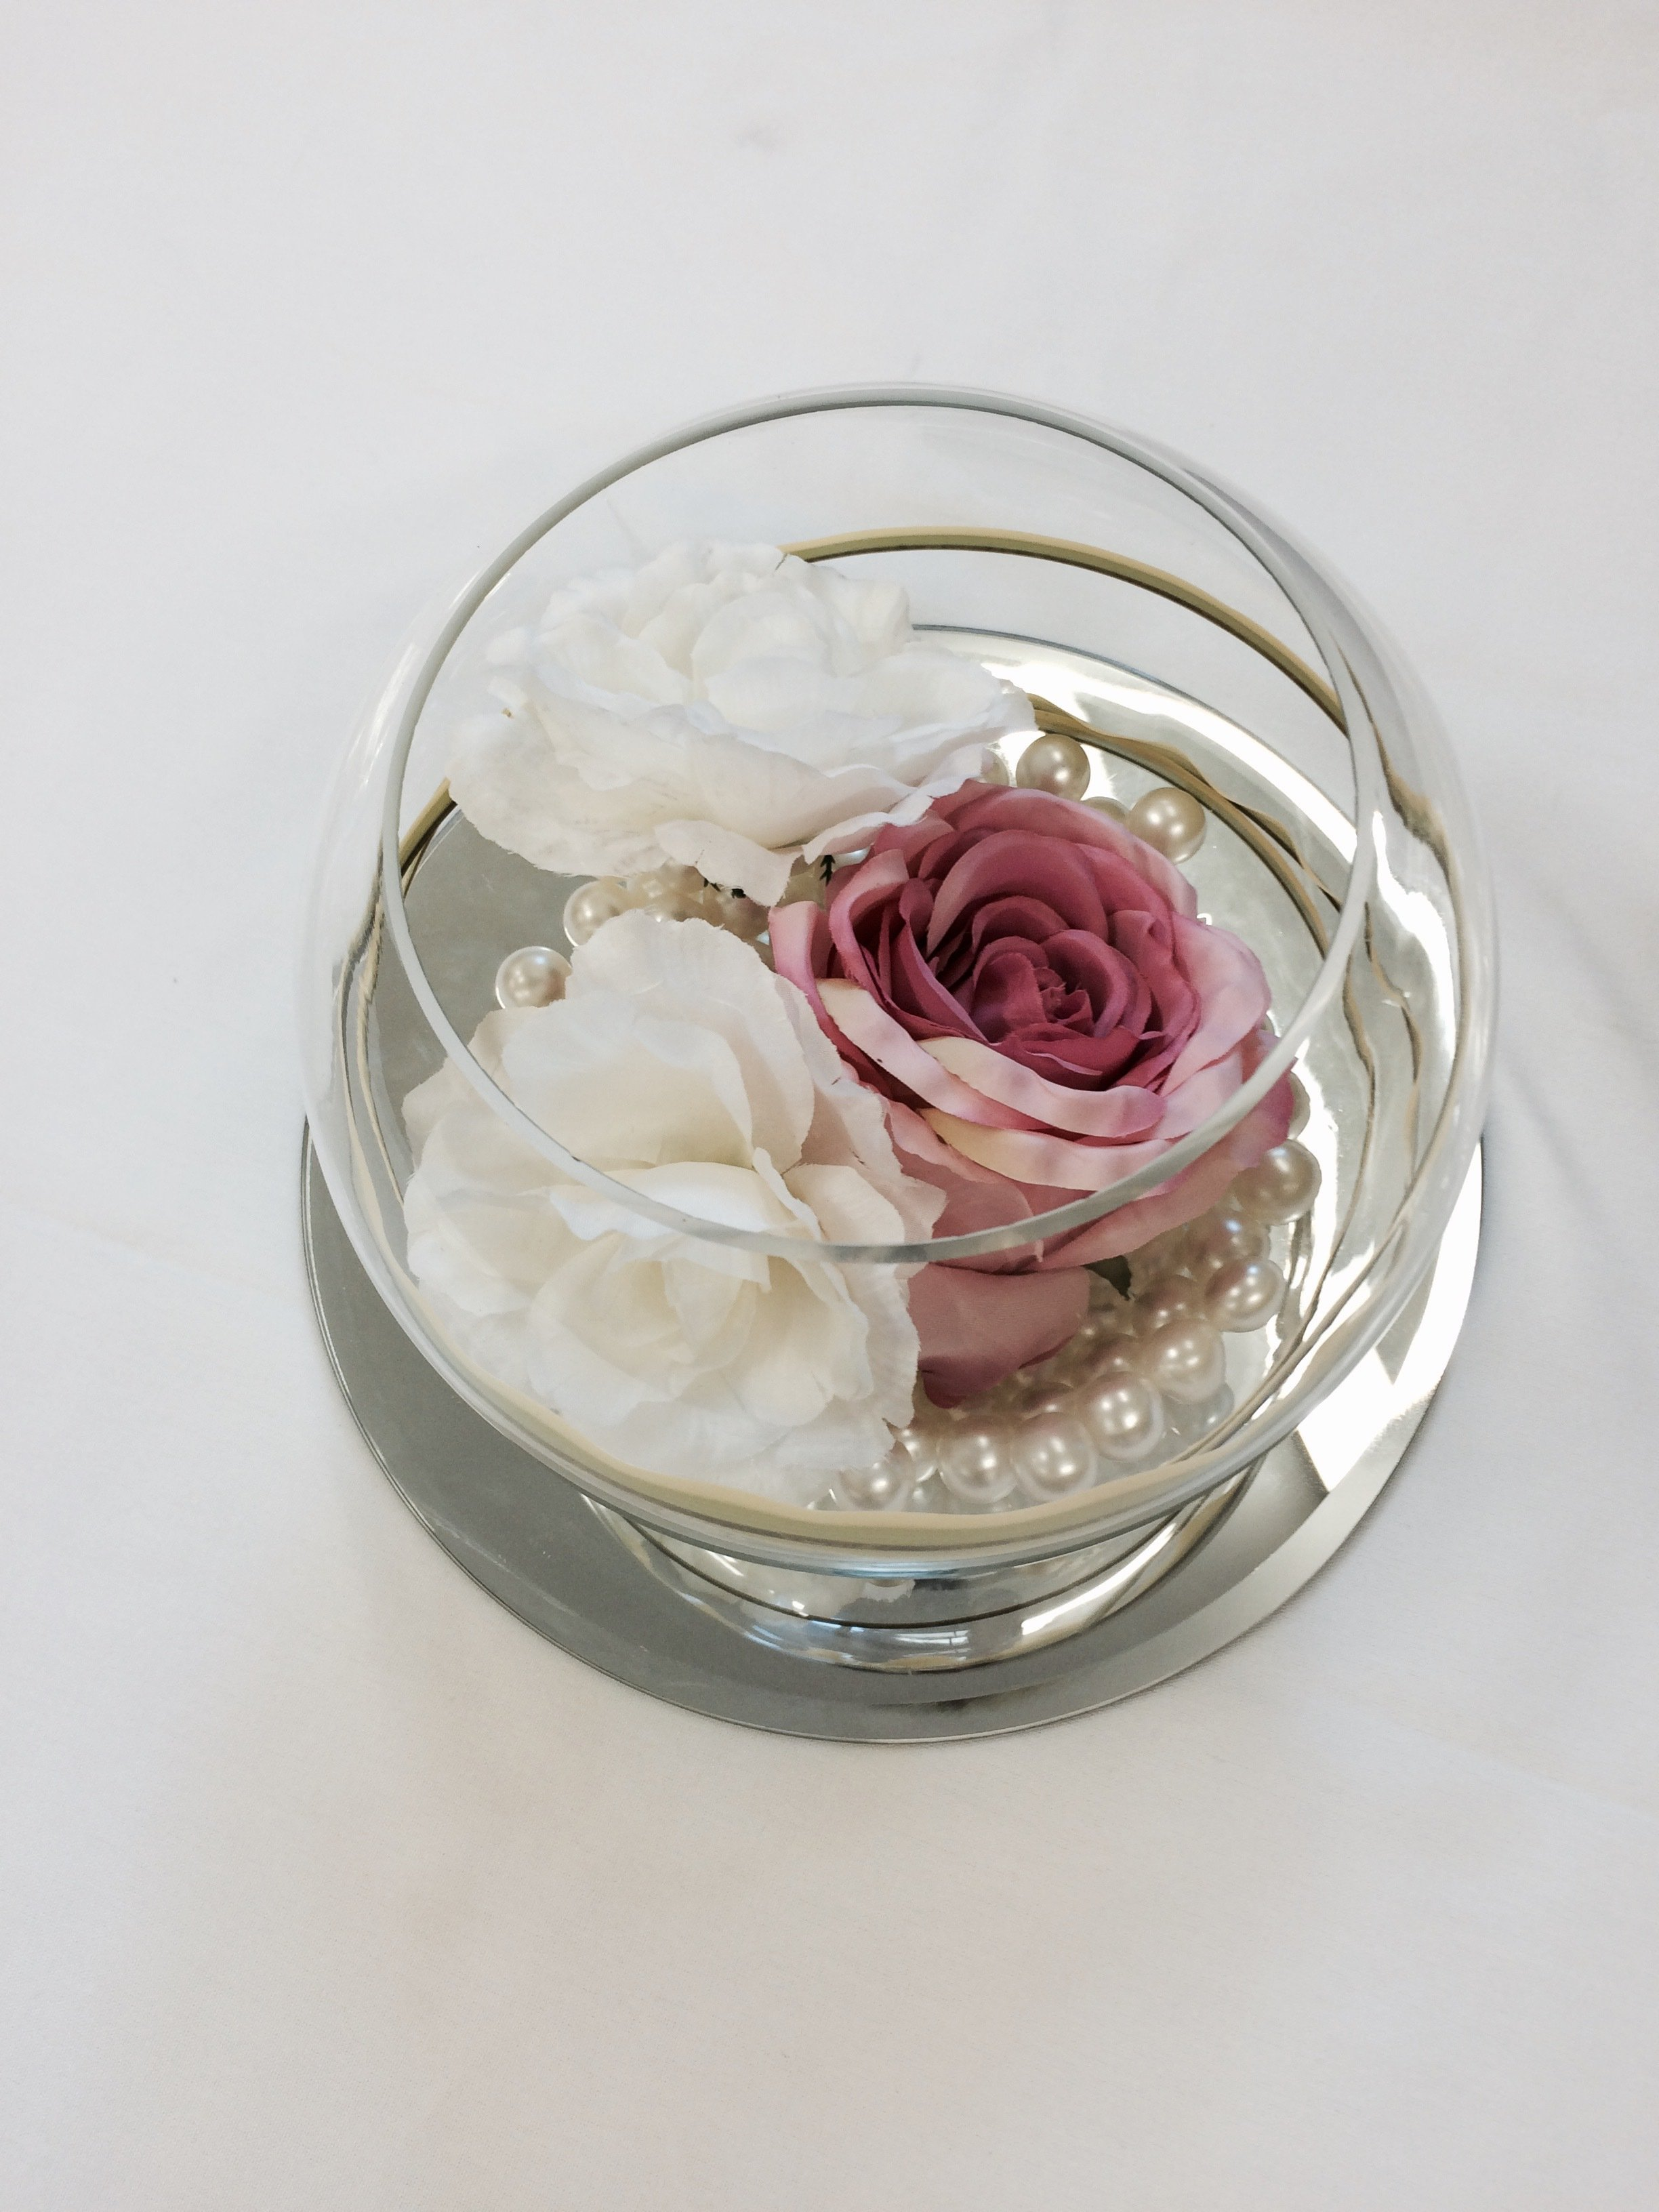 top view of a glass with roses